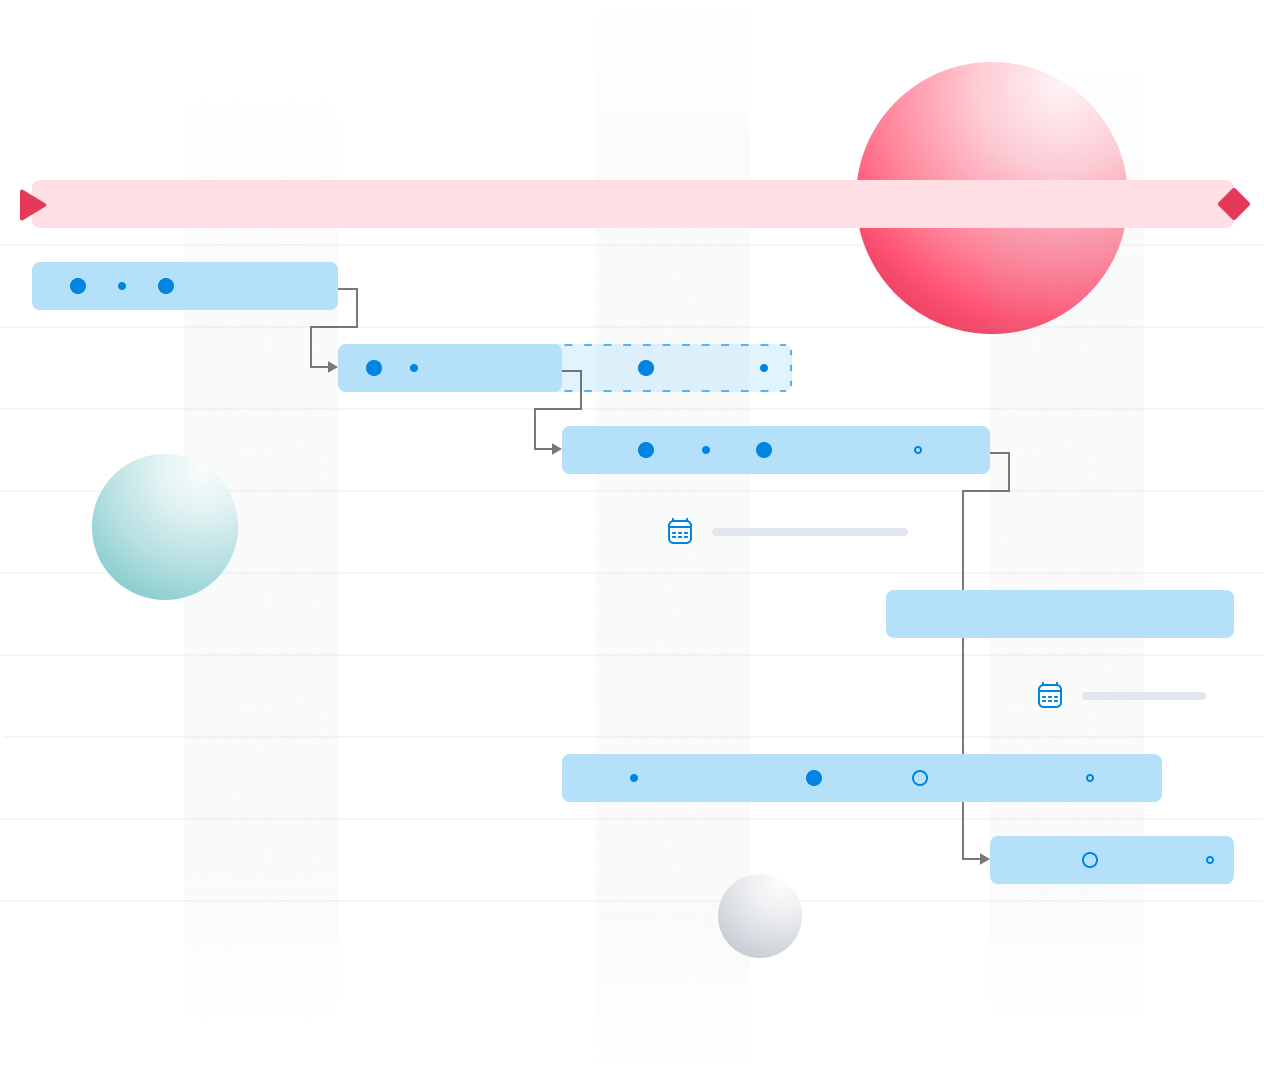 gantt chart with dependencies phases and milestones